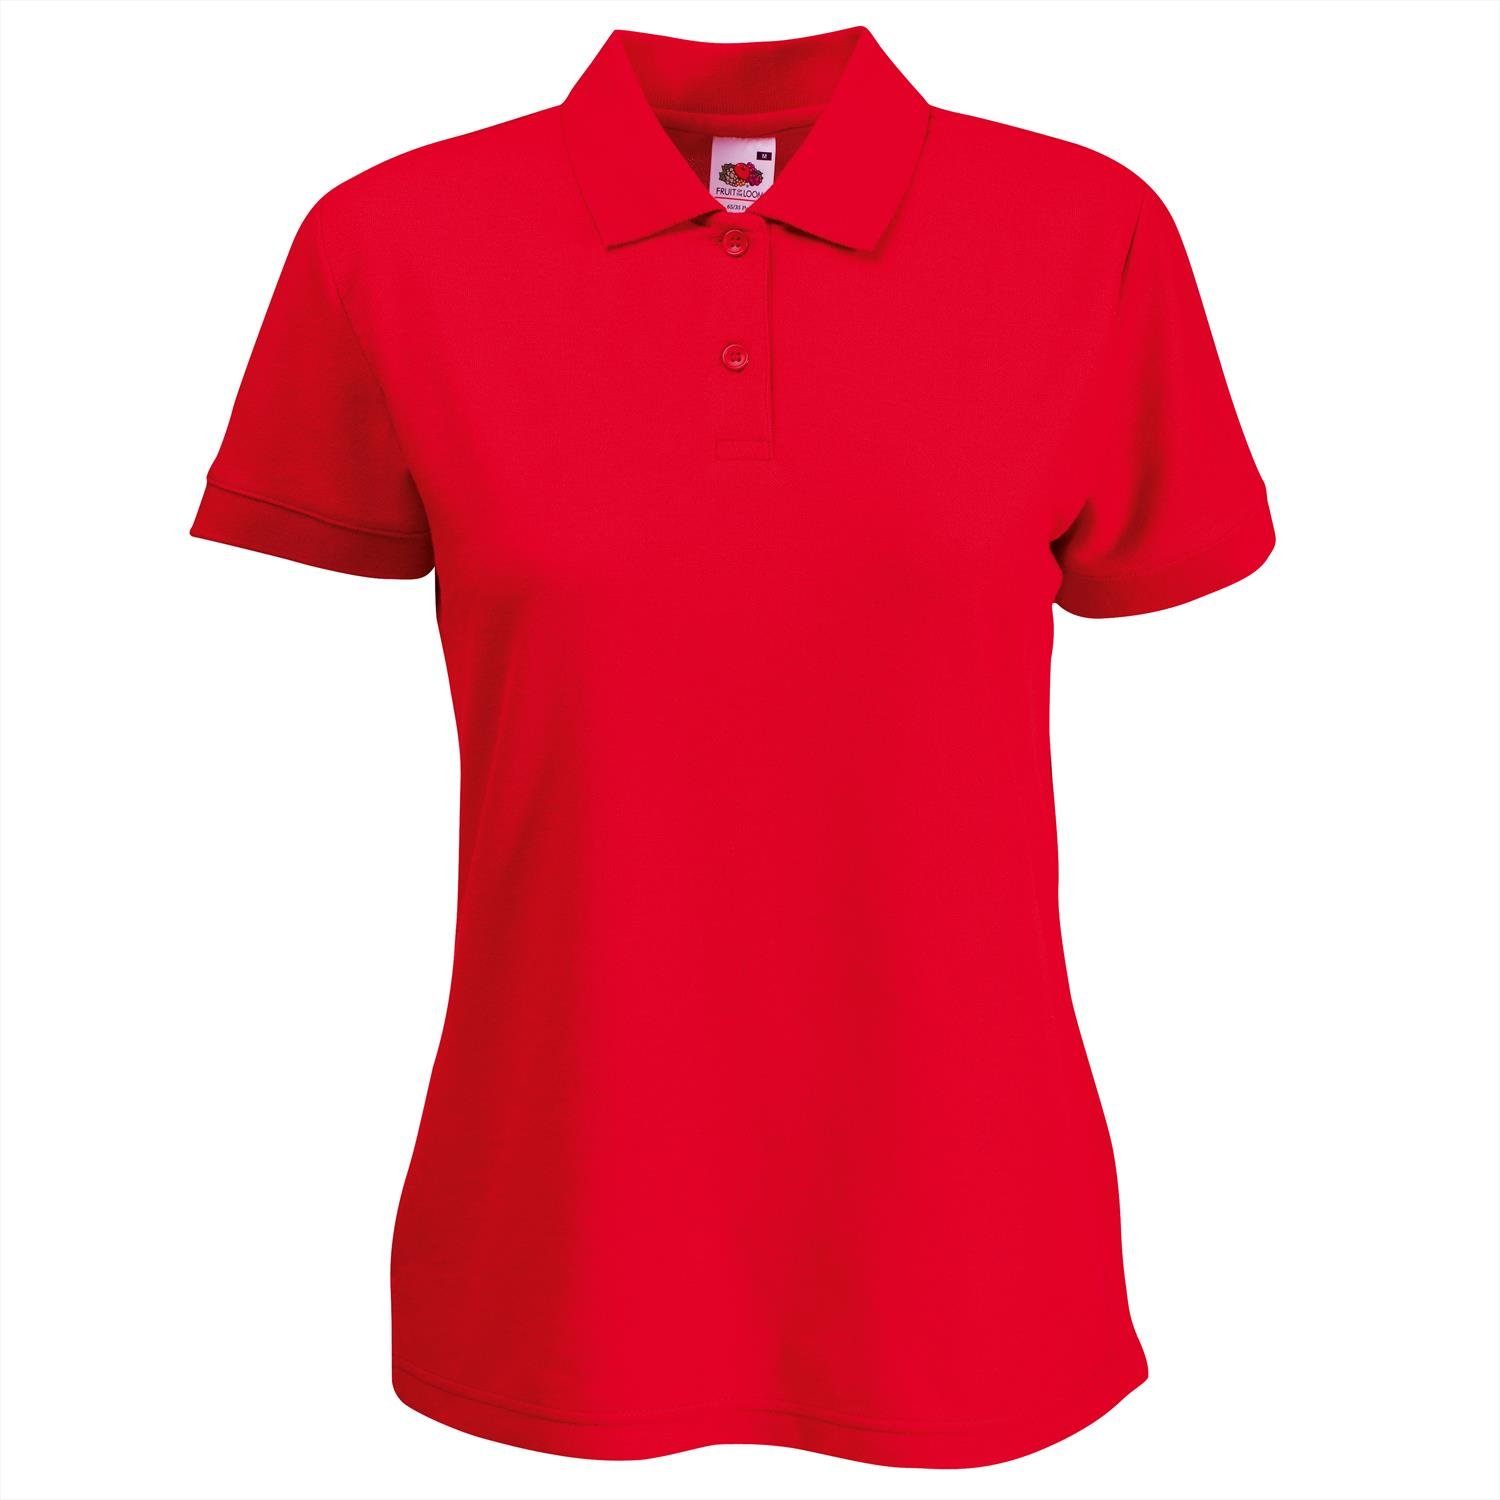 Fruit of the Loom Women's Fit Pique Short Sleeve Polo Shirt